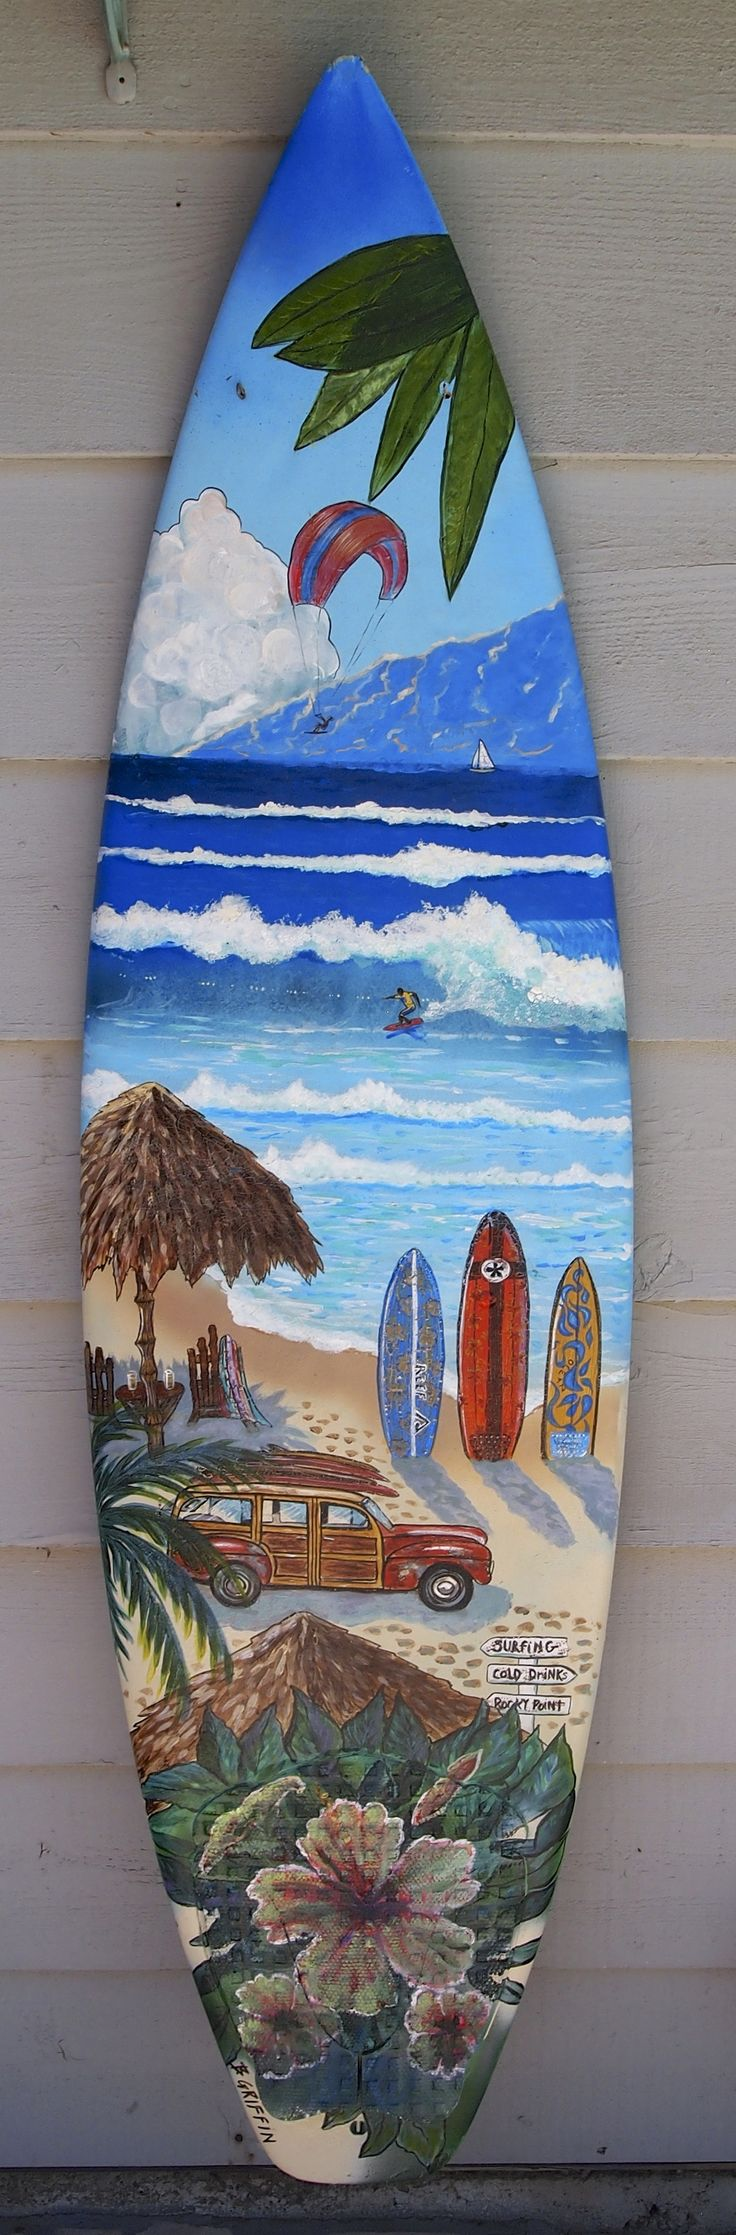 25 best ideas about surfboard art on pinterest surf for Beach mural painting